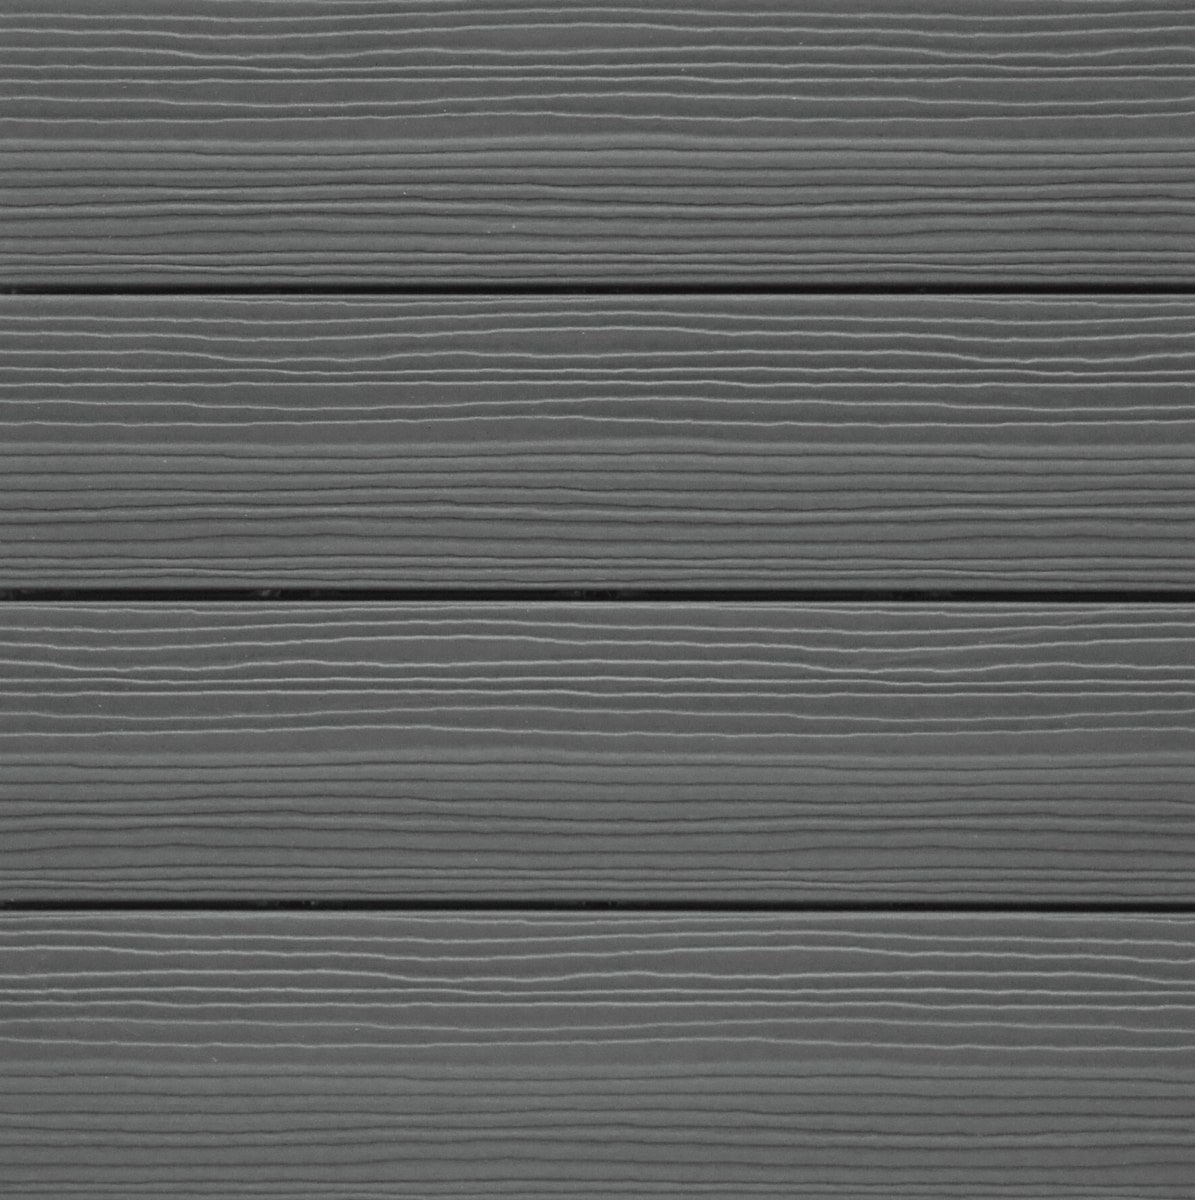 Composite Deck Tiles Kontiki Interlocking Deck Tiles Composite Quickdeck